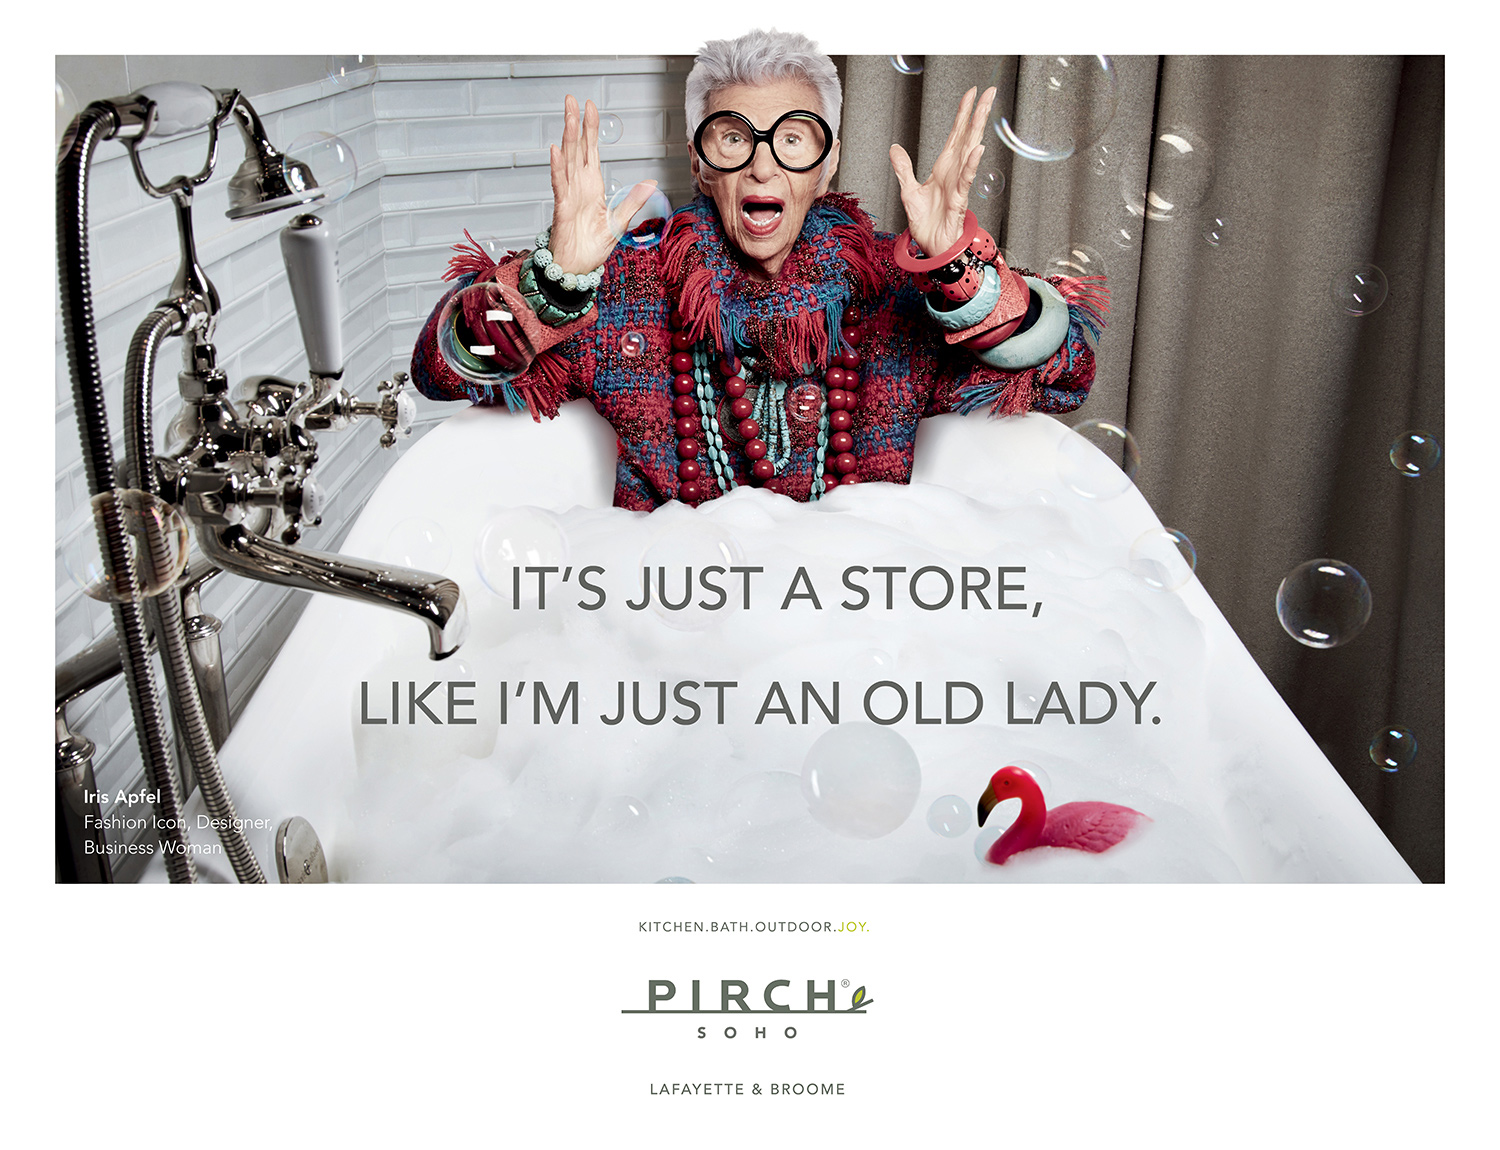 PIRCH_Iris_Apfel_FINAL_cb.jpg